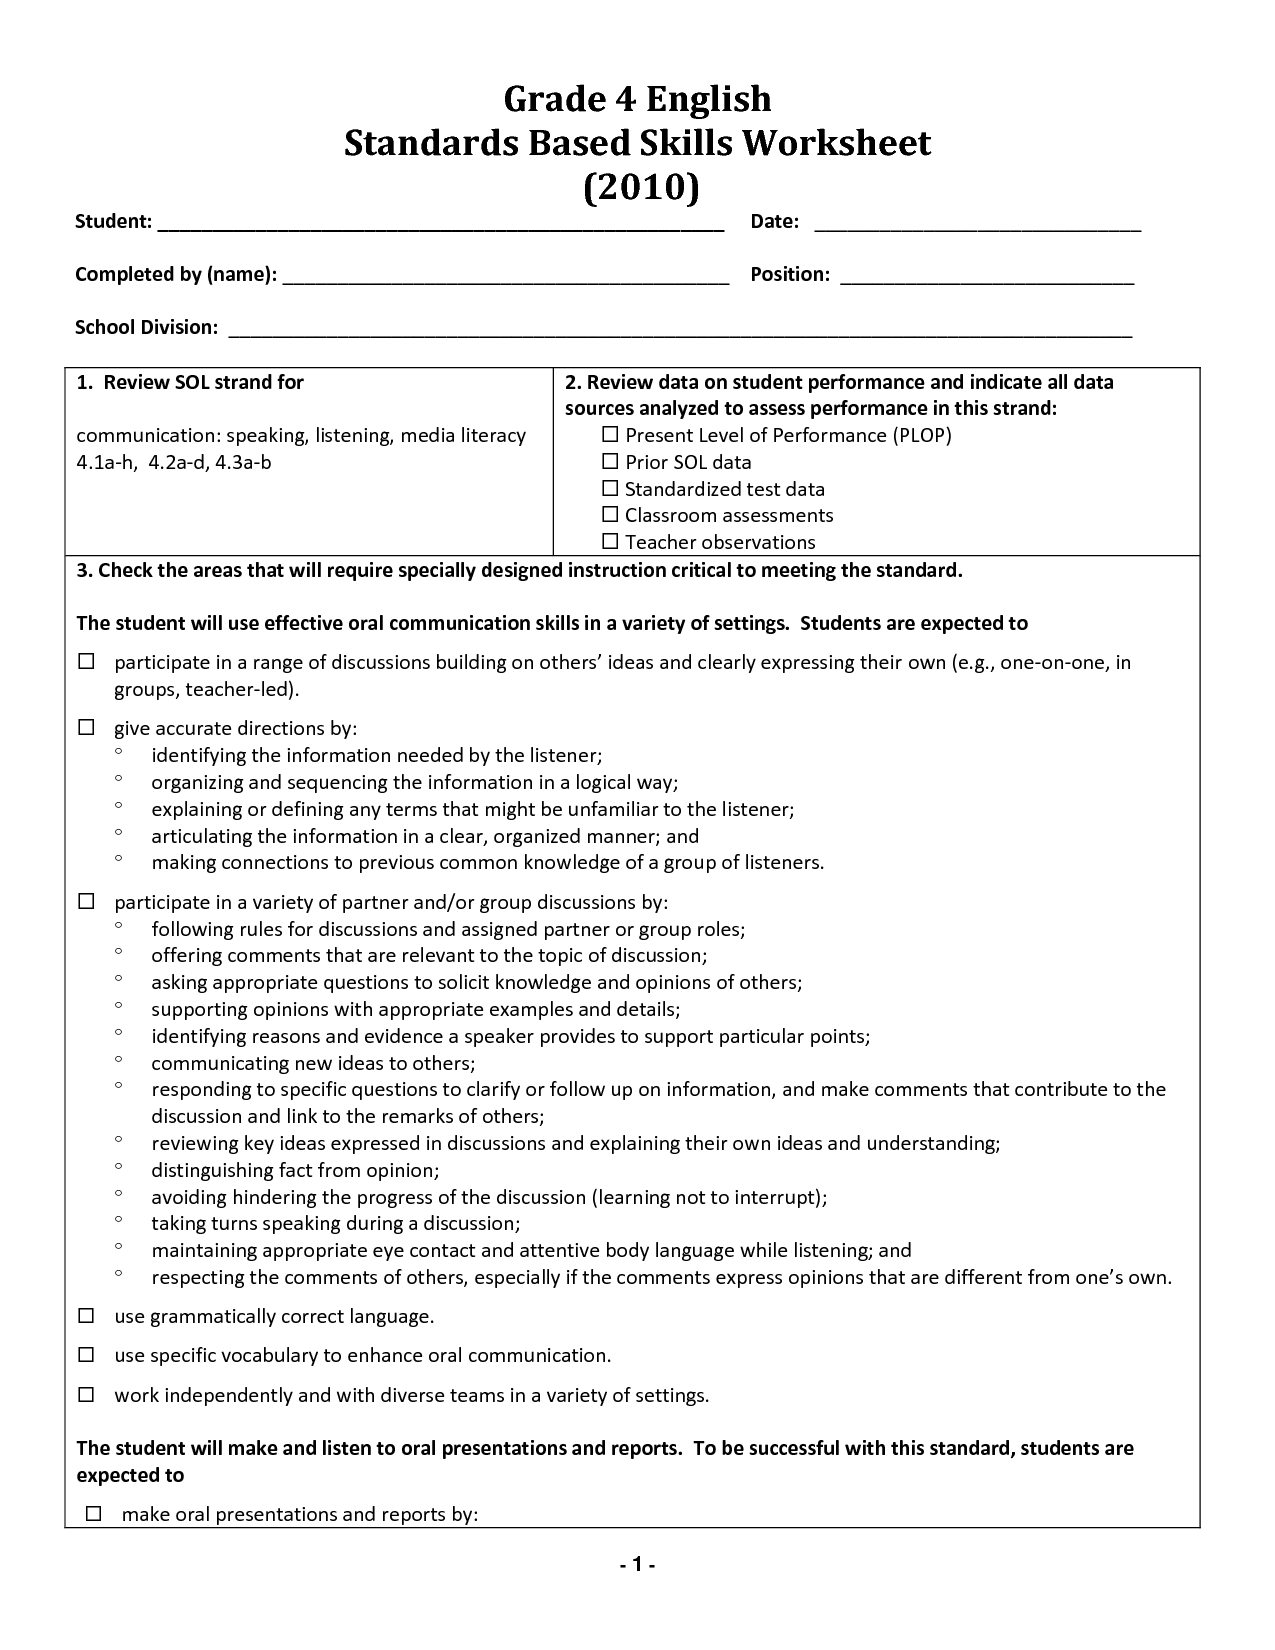 Grade 8 English Grammar Worksheet